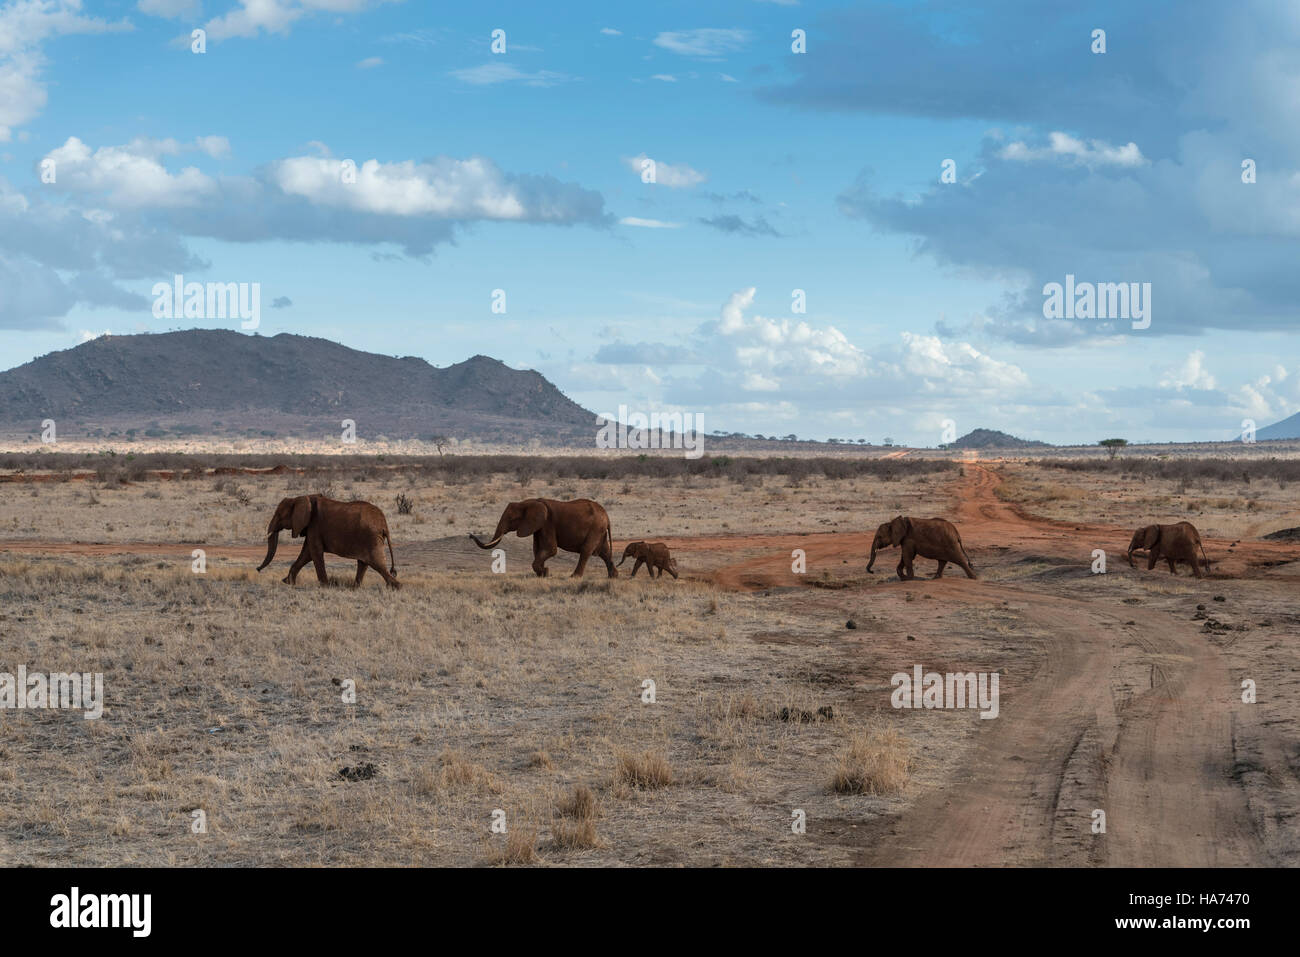 A family group of 'red' elephants (Loxodonta africana) walking across the savanna - Stock Image